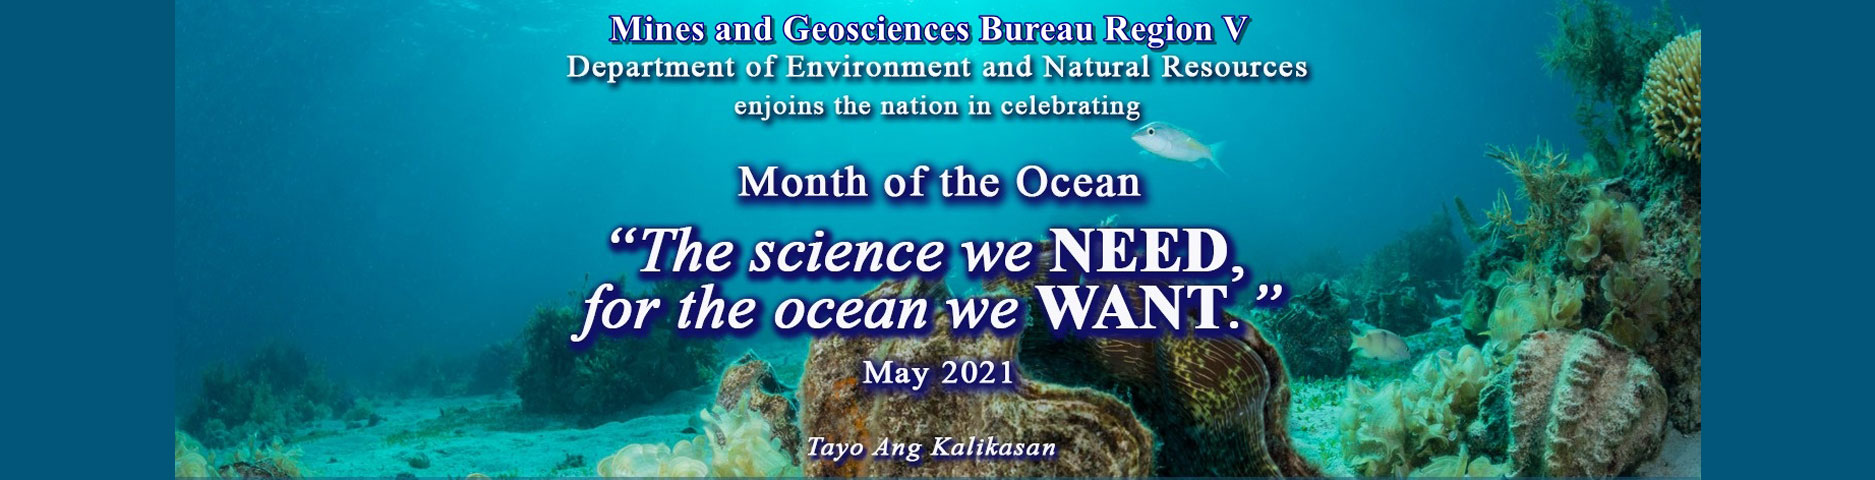 April 2021 Month of the Ocean